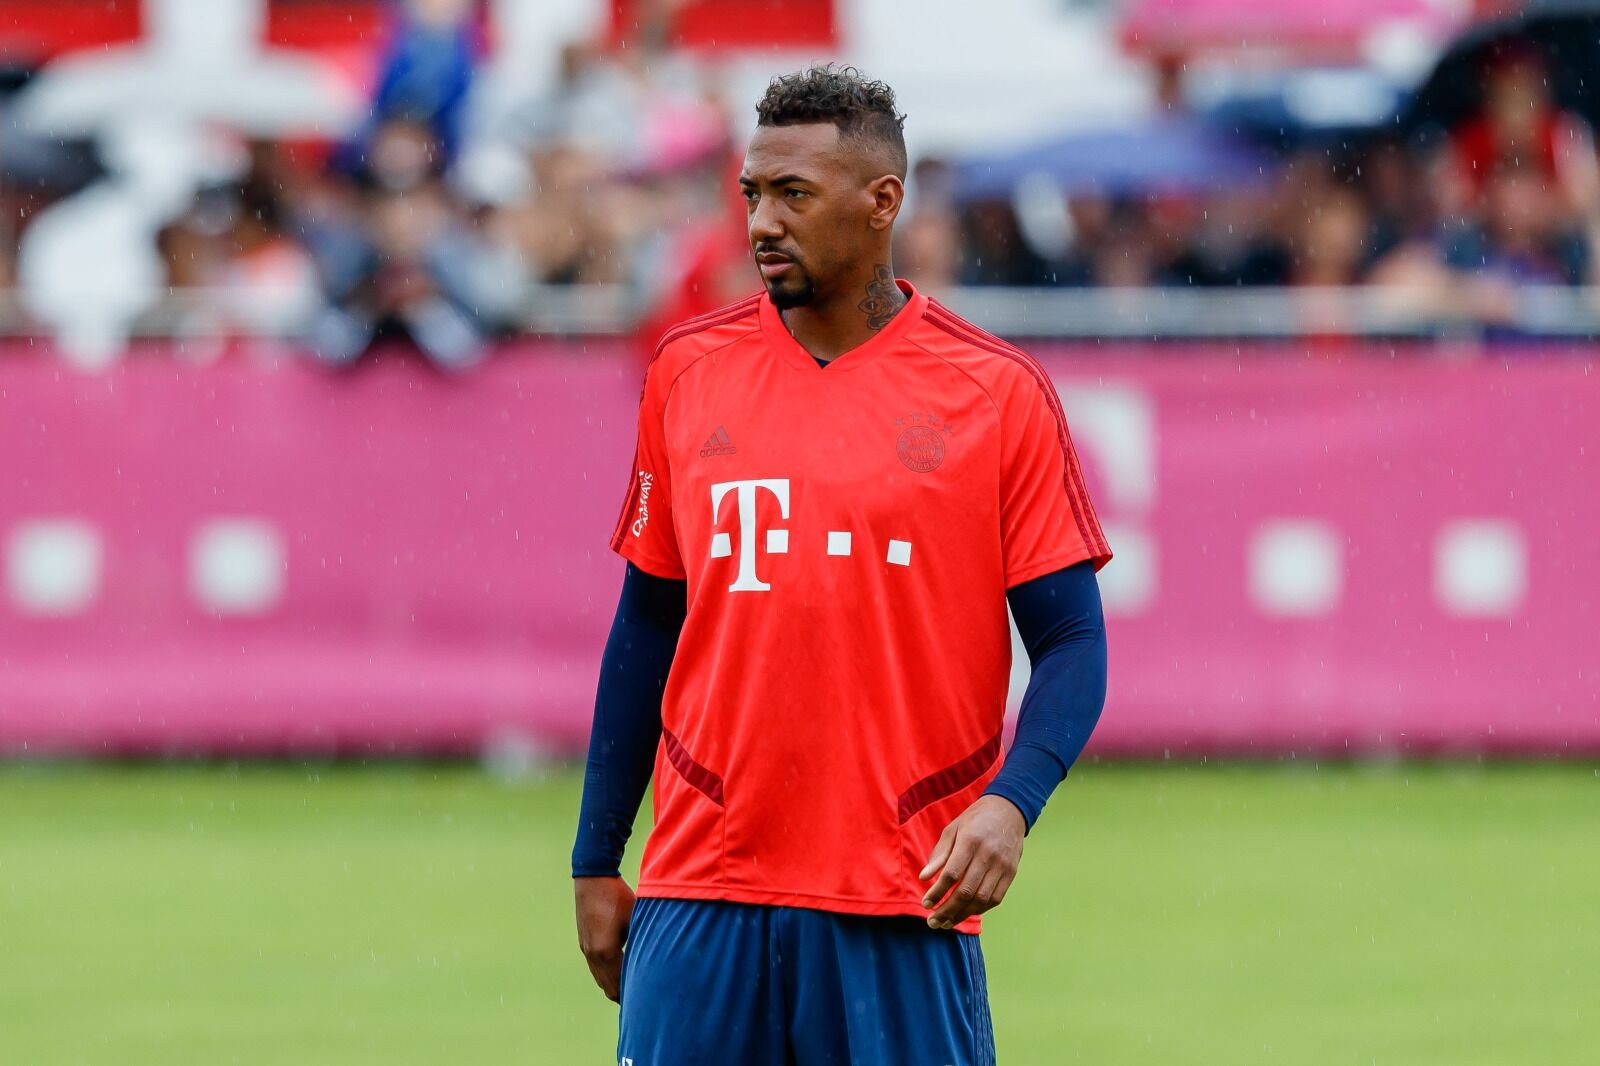 Bayern Munich defender Jerome Boateng linked with Fenerbahce